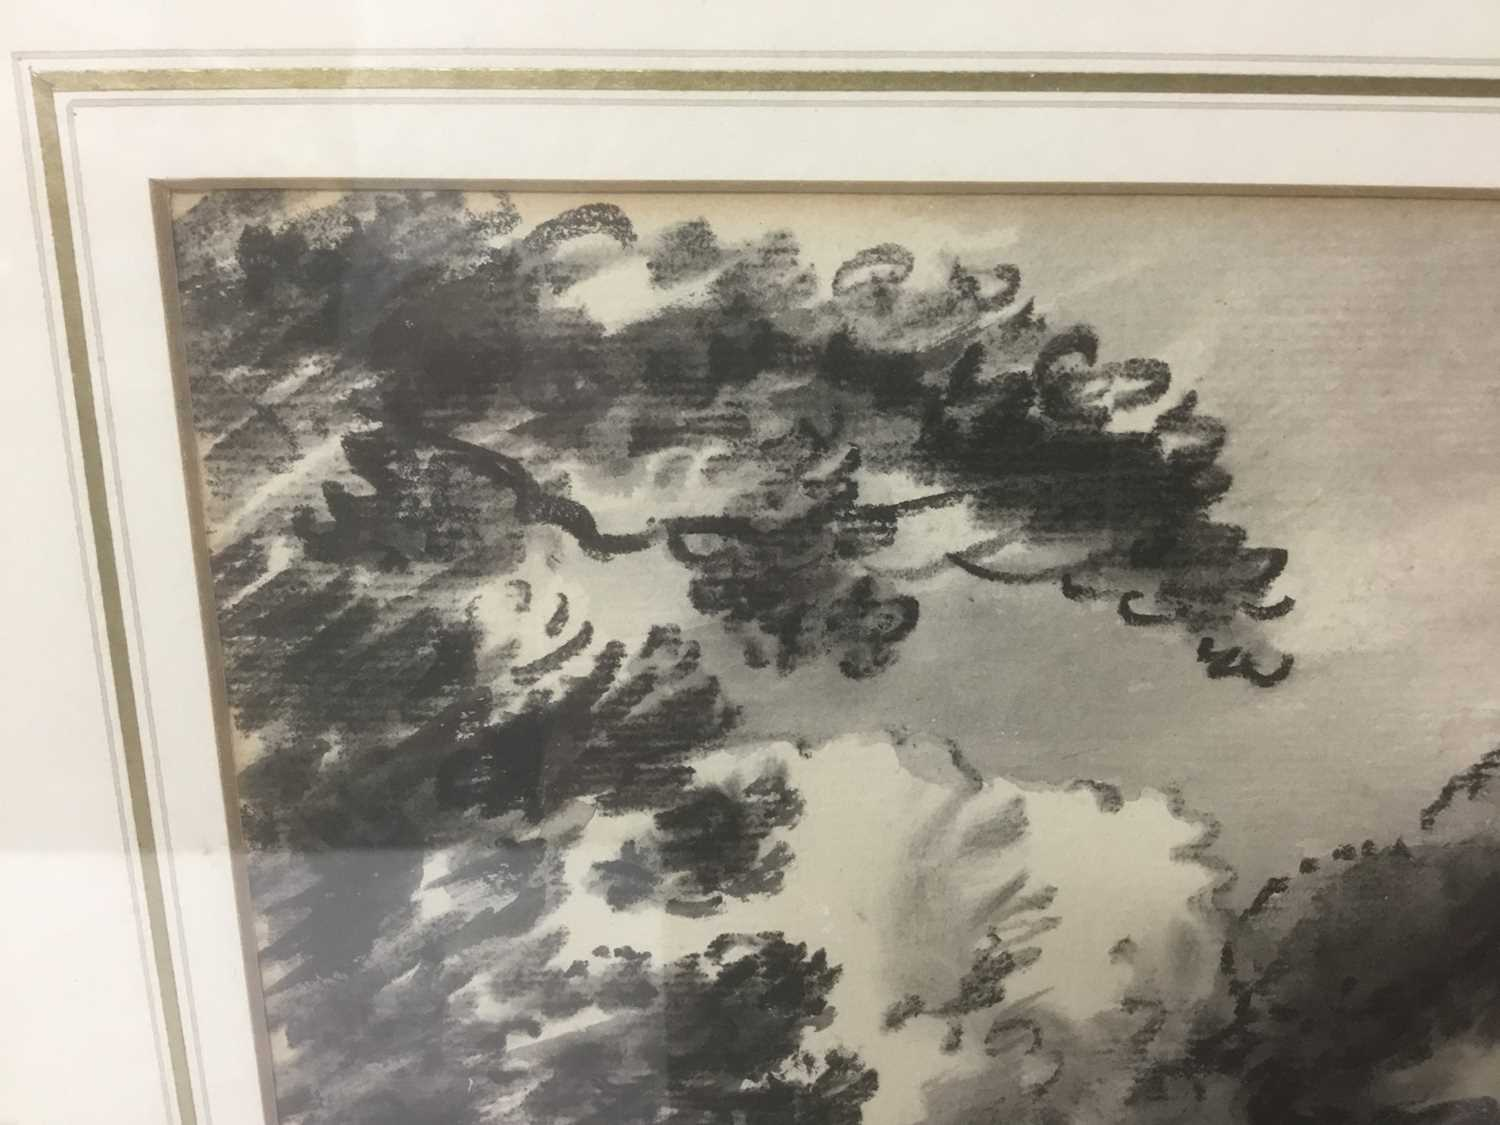 Thomas Monro (1759-1833) charcoal and wash - a landscape, in glazed gilt frame - Image 3 of 6